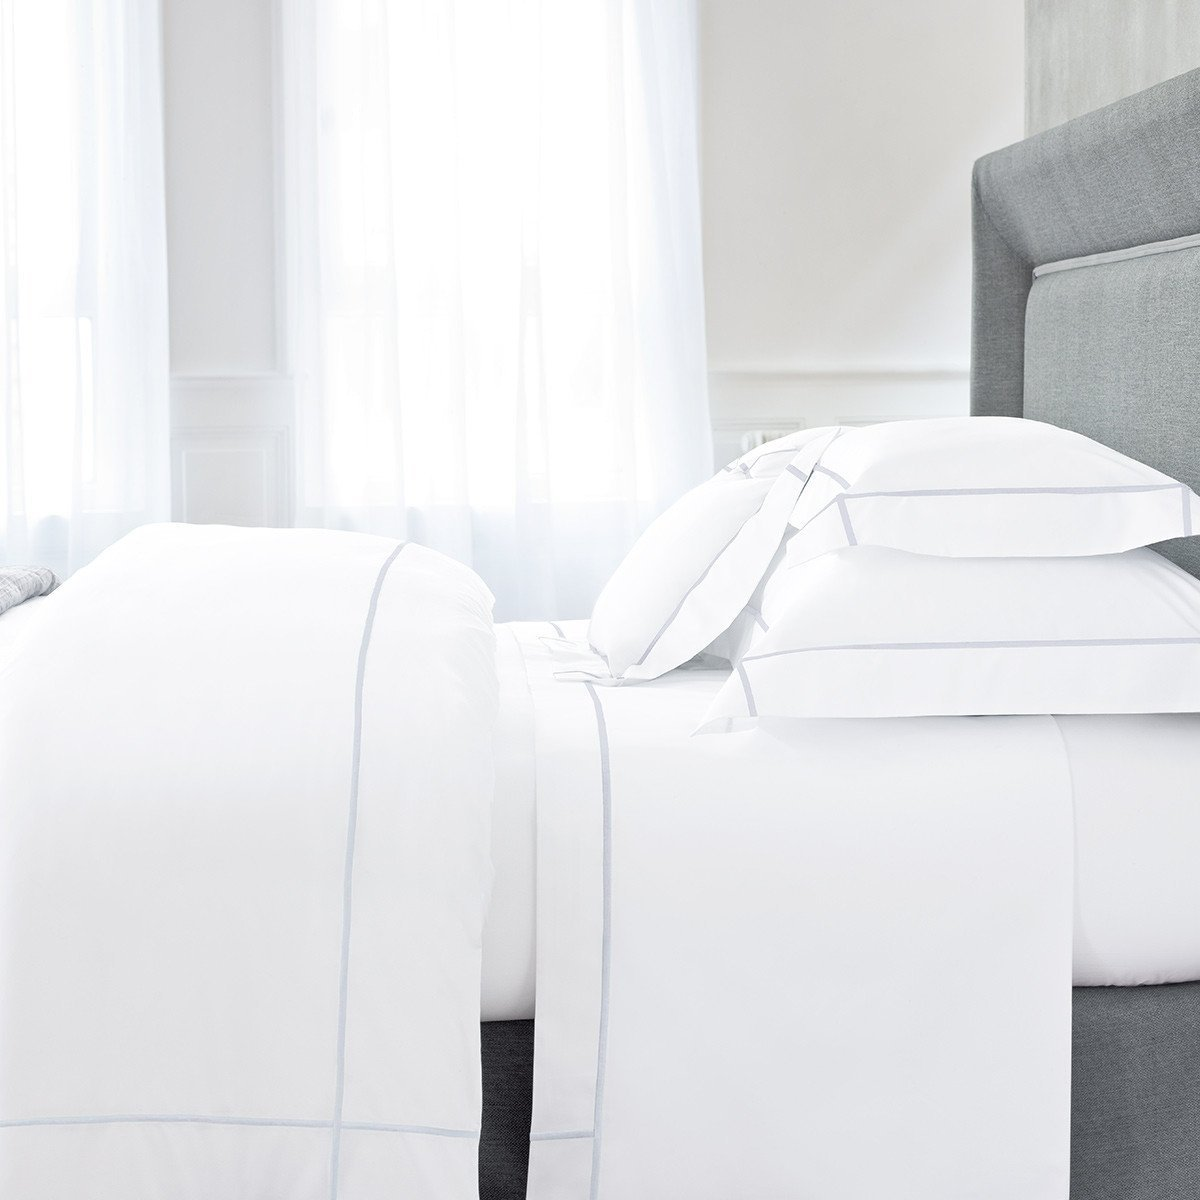 Athena Opalia Bedding Collection by Yves Delorme, Fig Linens - White bed linens